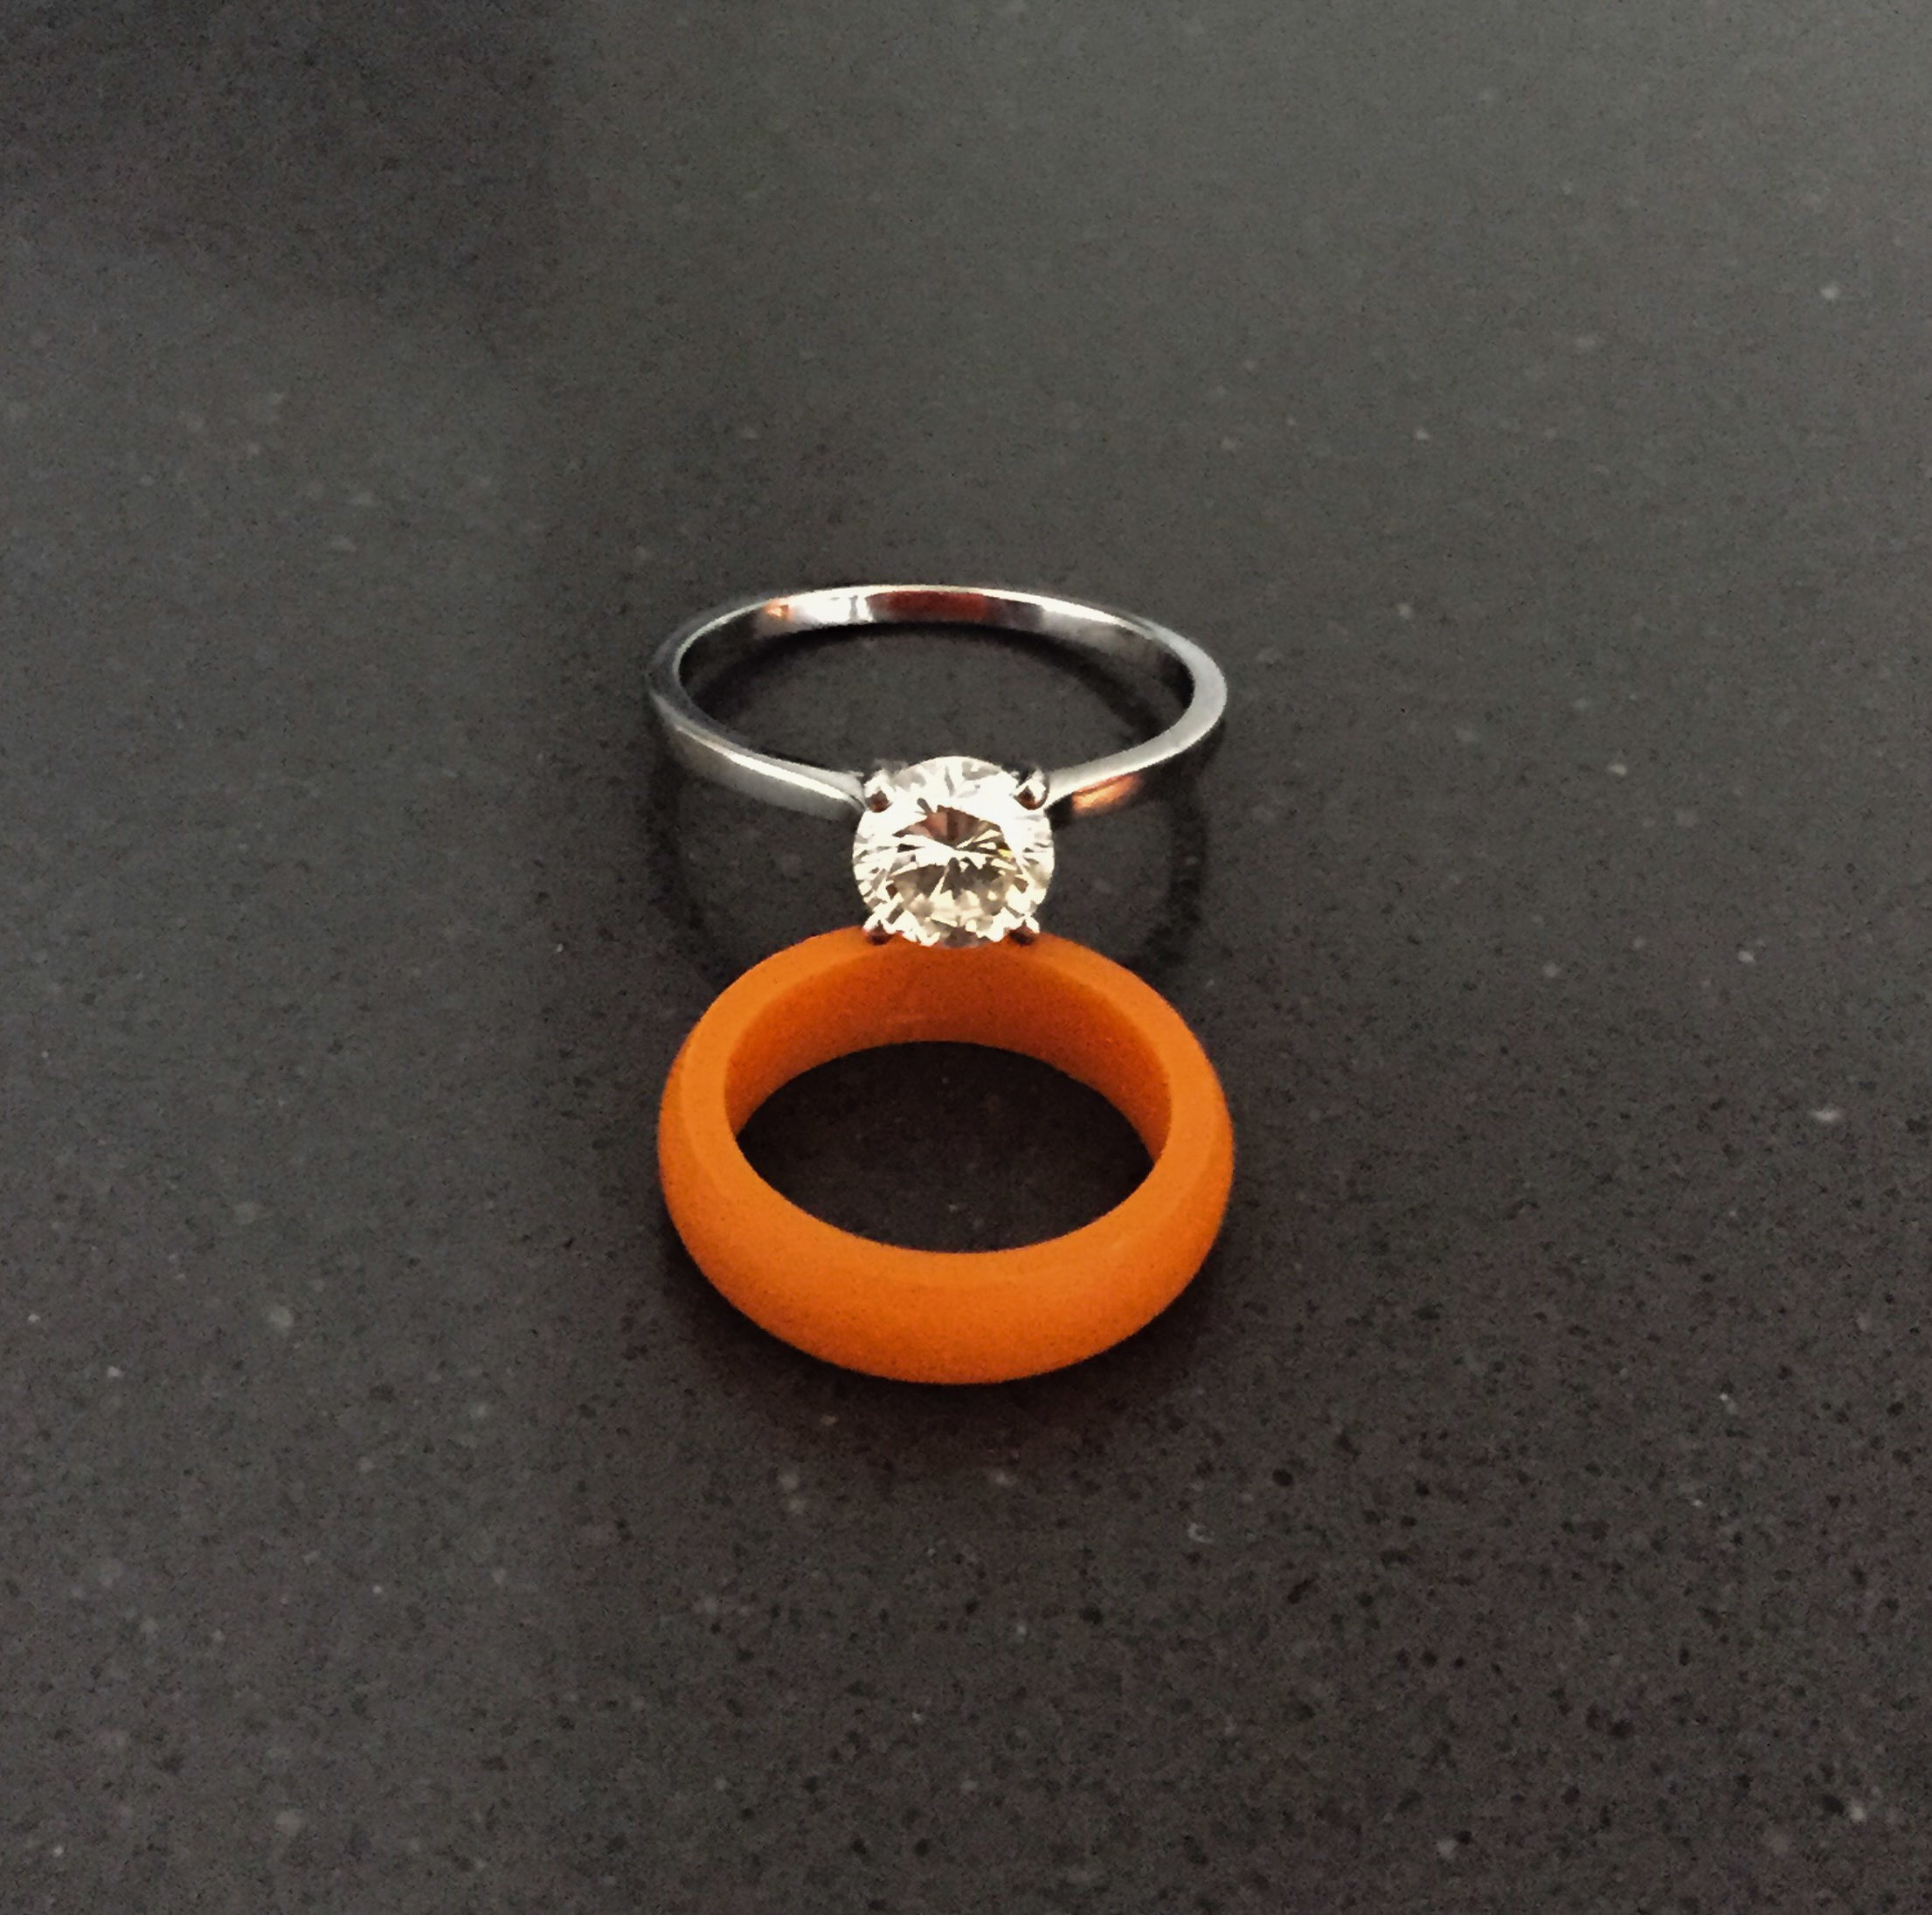 blossom ring deco beautiful images rings ashworthmairsgroup best white gold engagement of art wedding orange